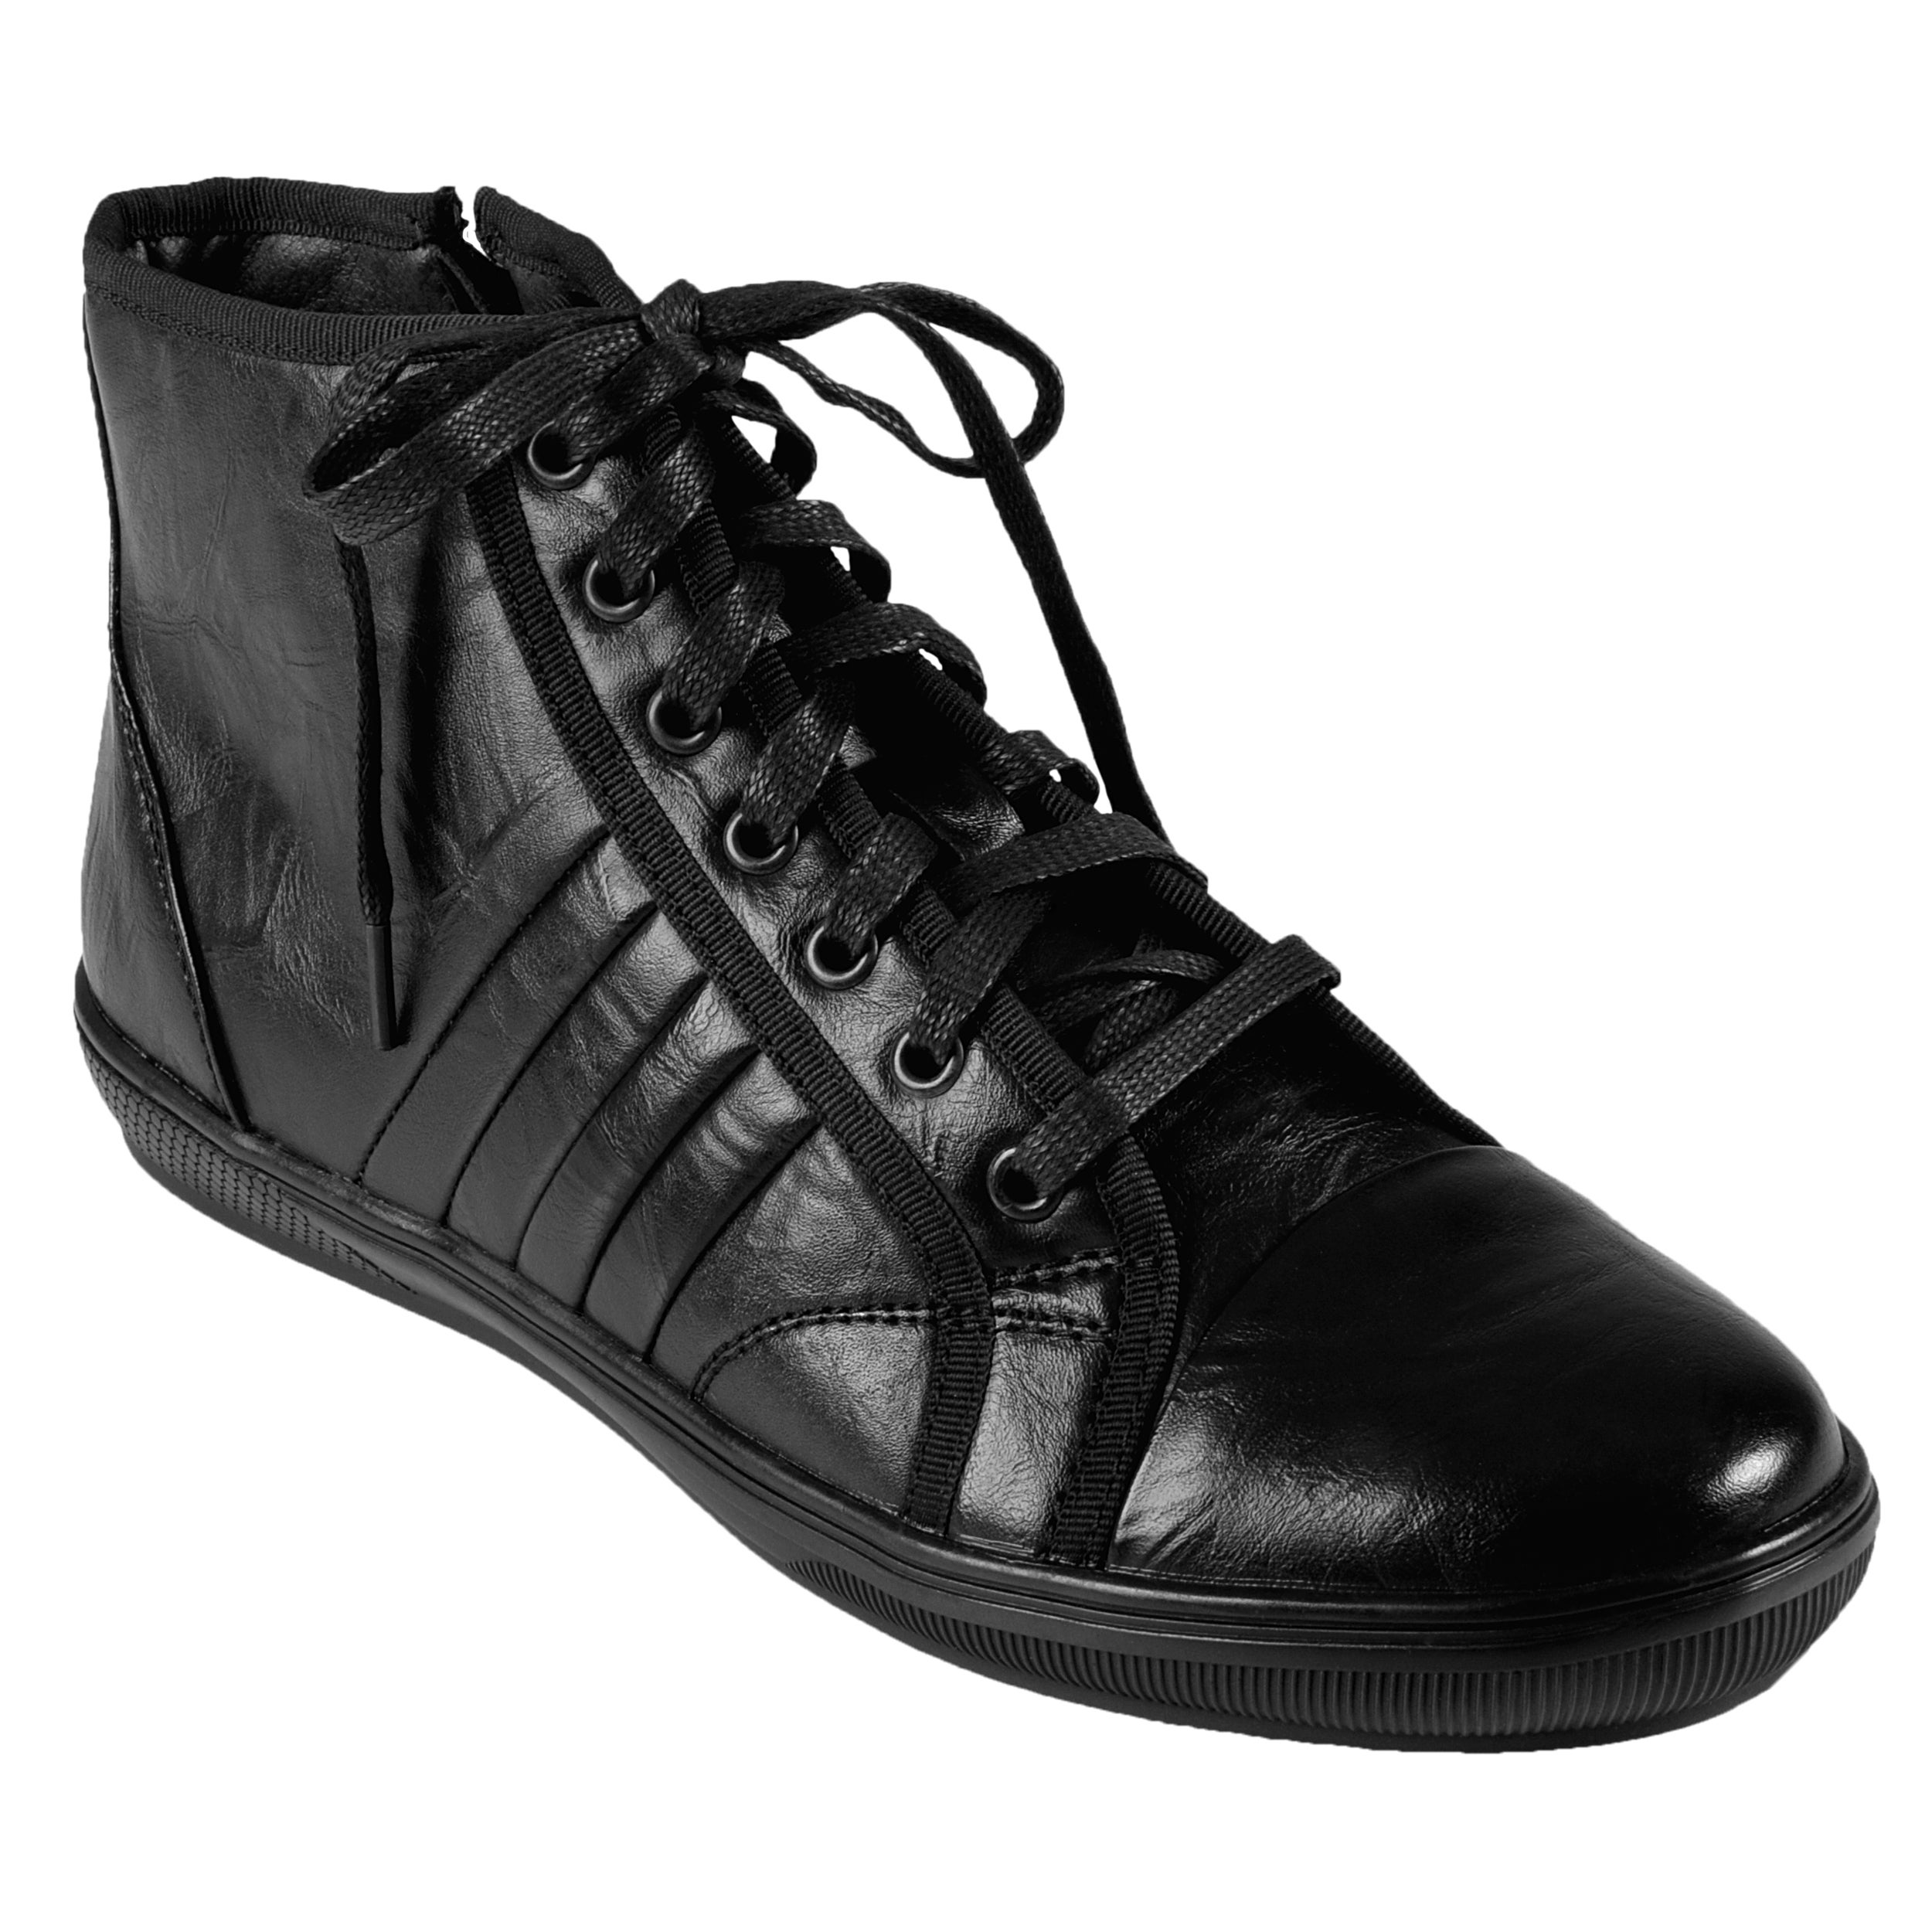 Boston Traveler Men's High Top Lace-up Sneakers